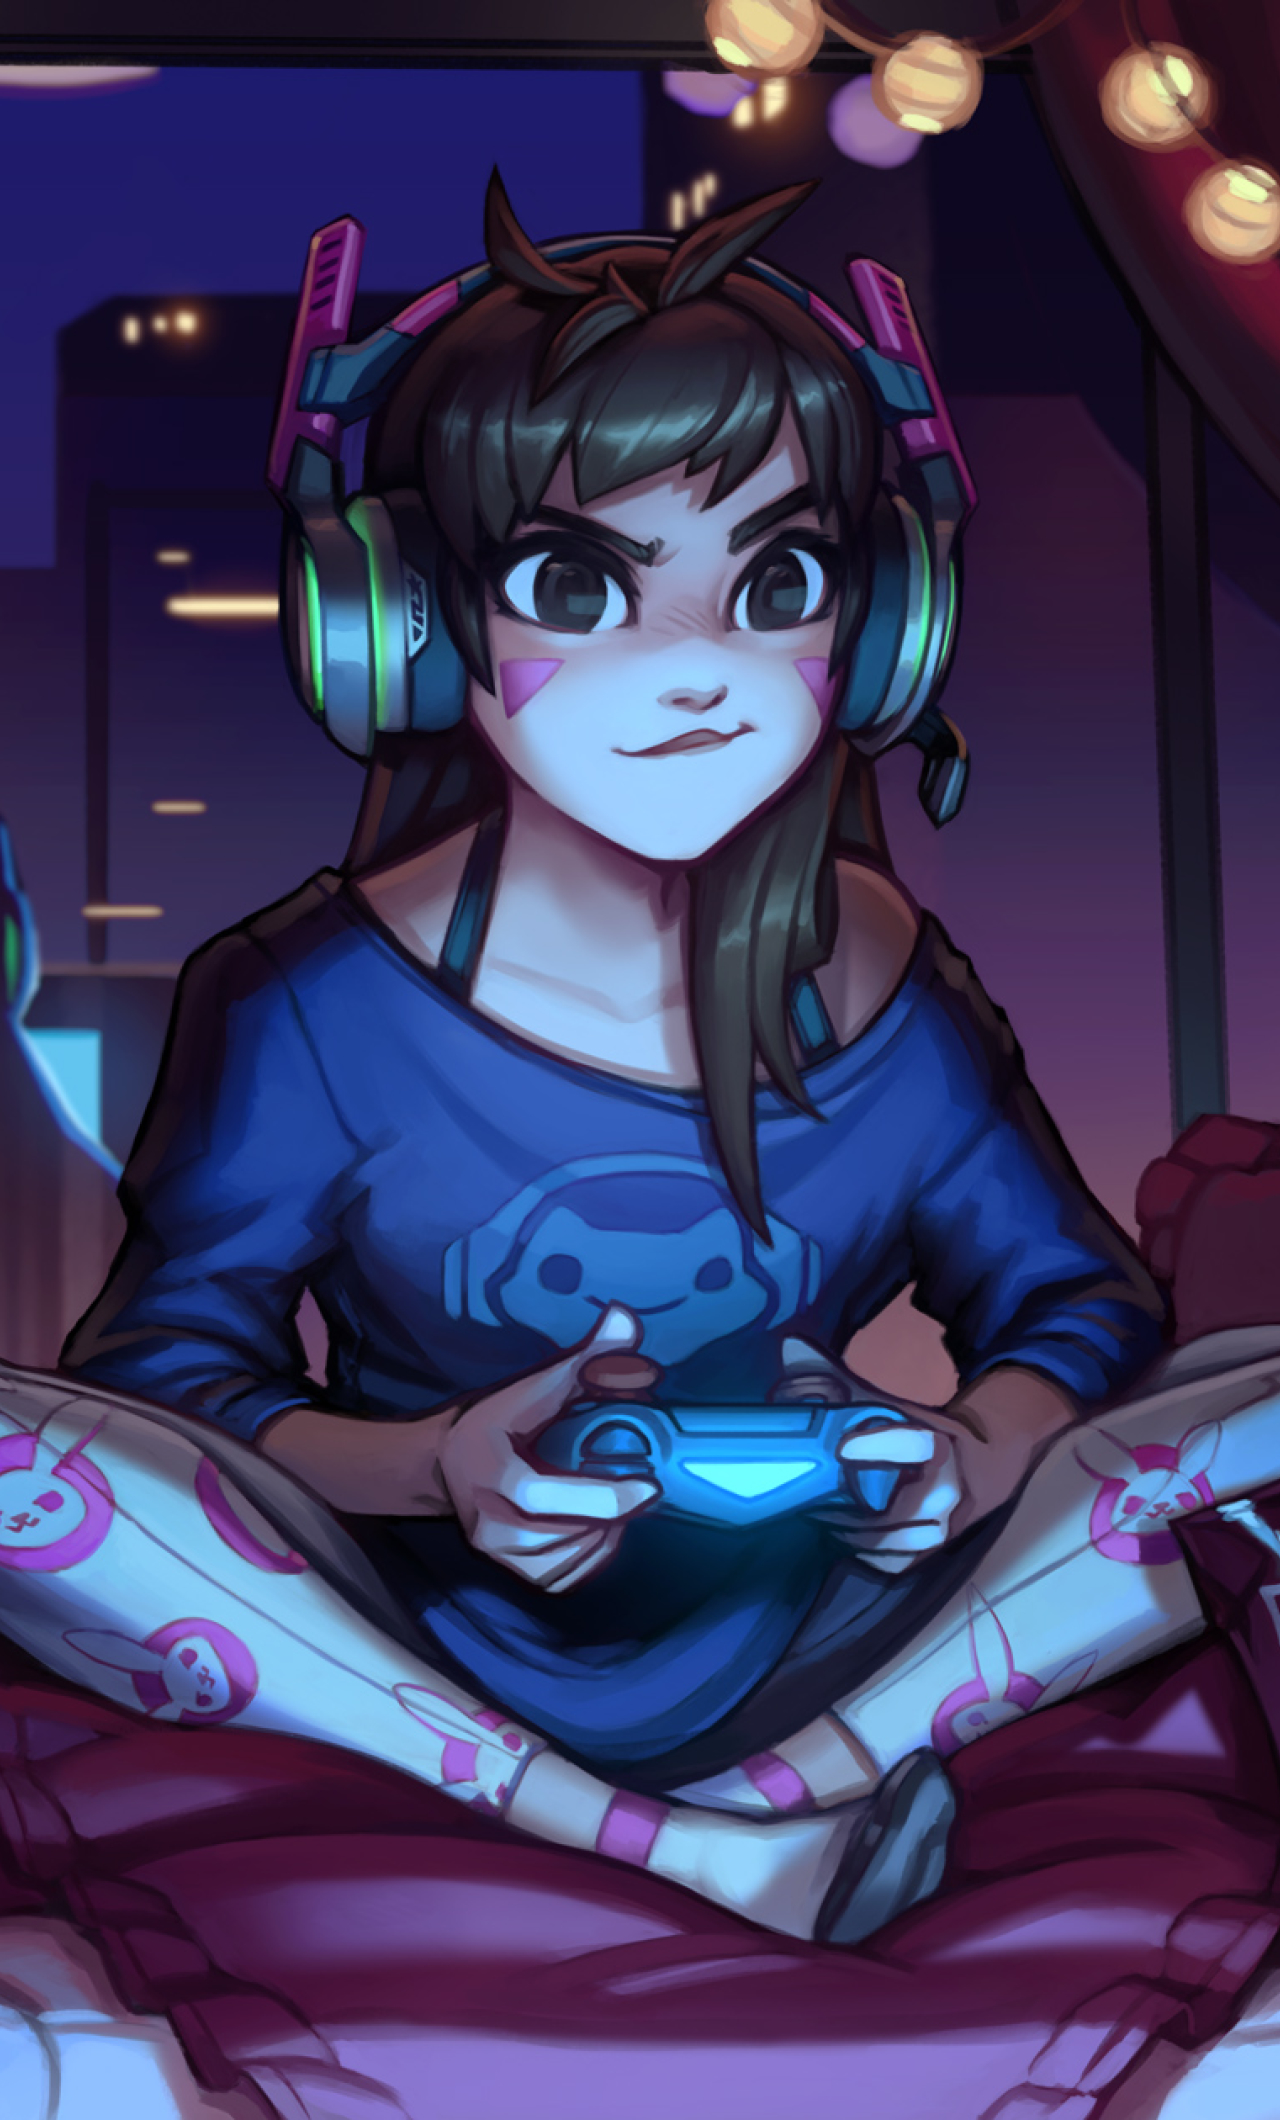 dva overwatch cute artwork  full hd 2k wallpaper